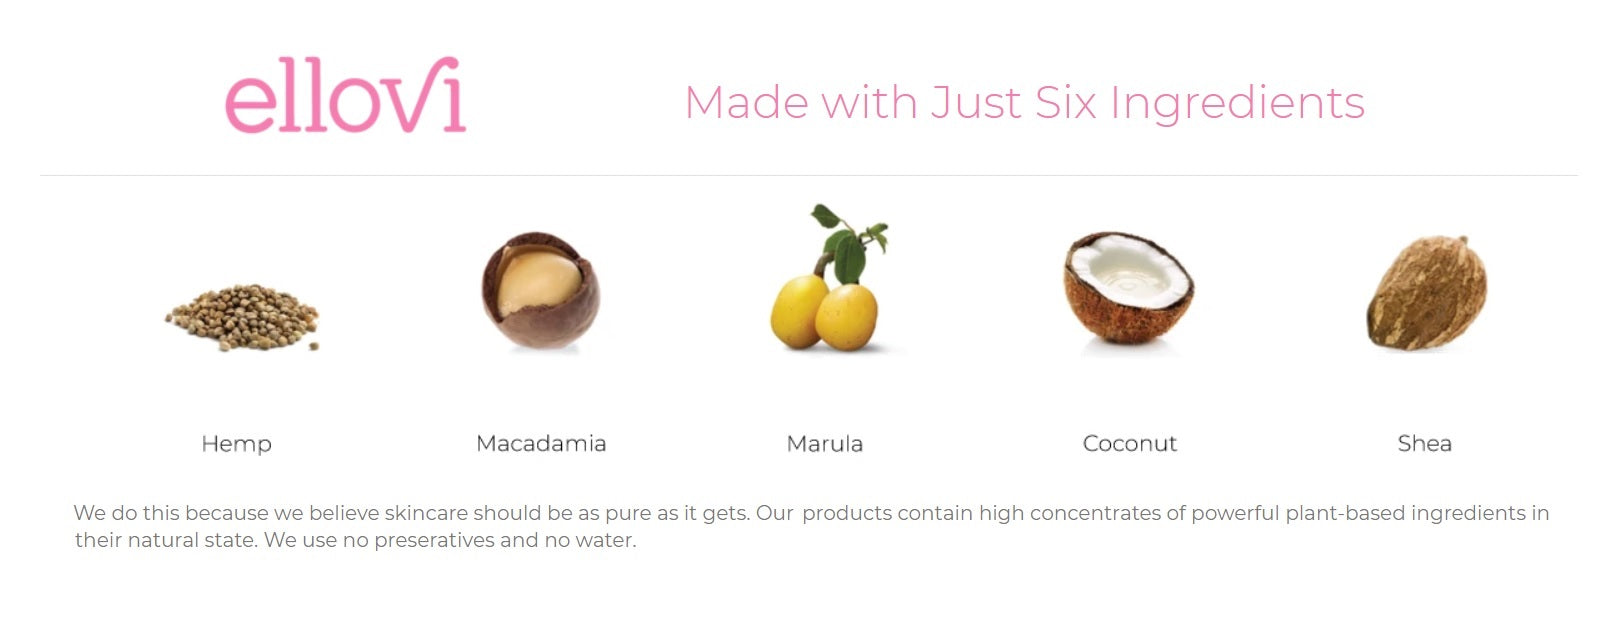 Ellovi Body Butters use only six natural ingredients